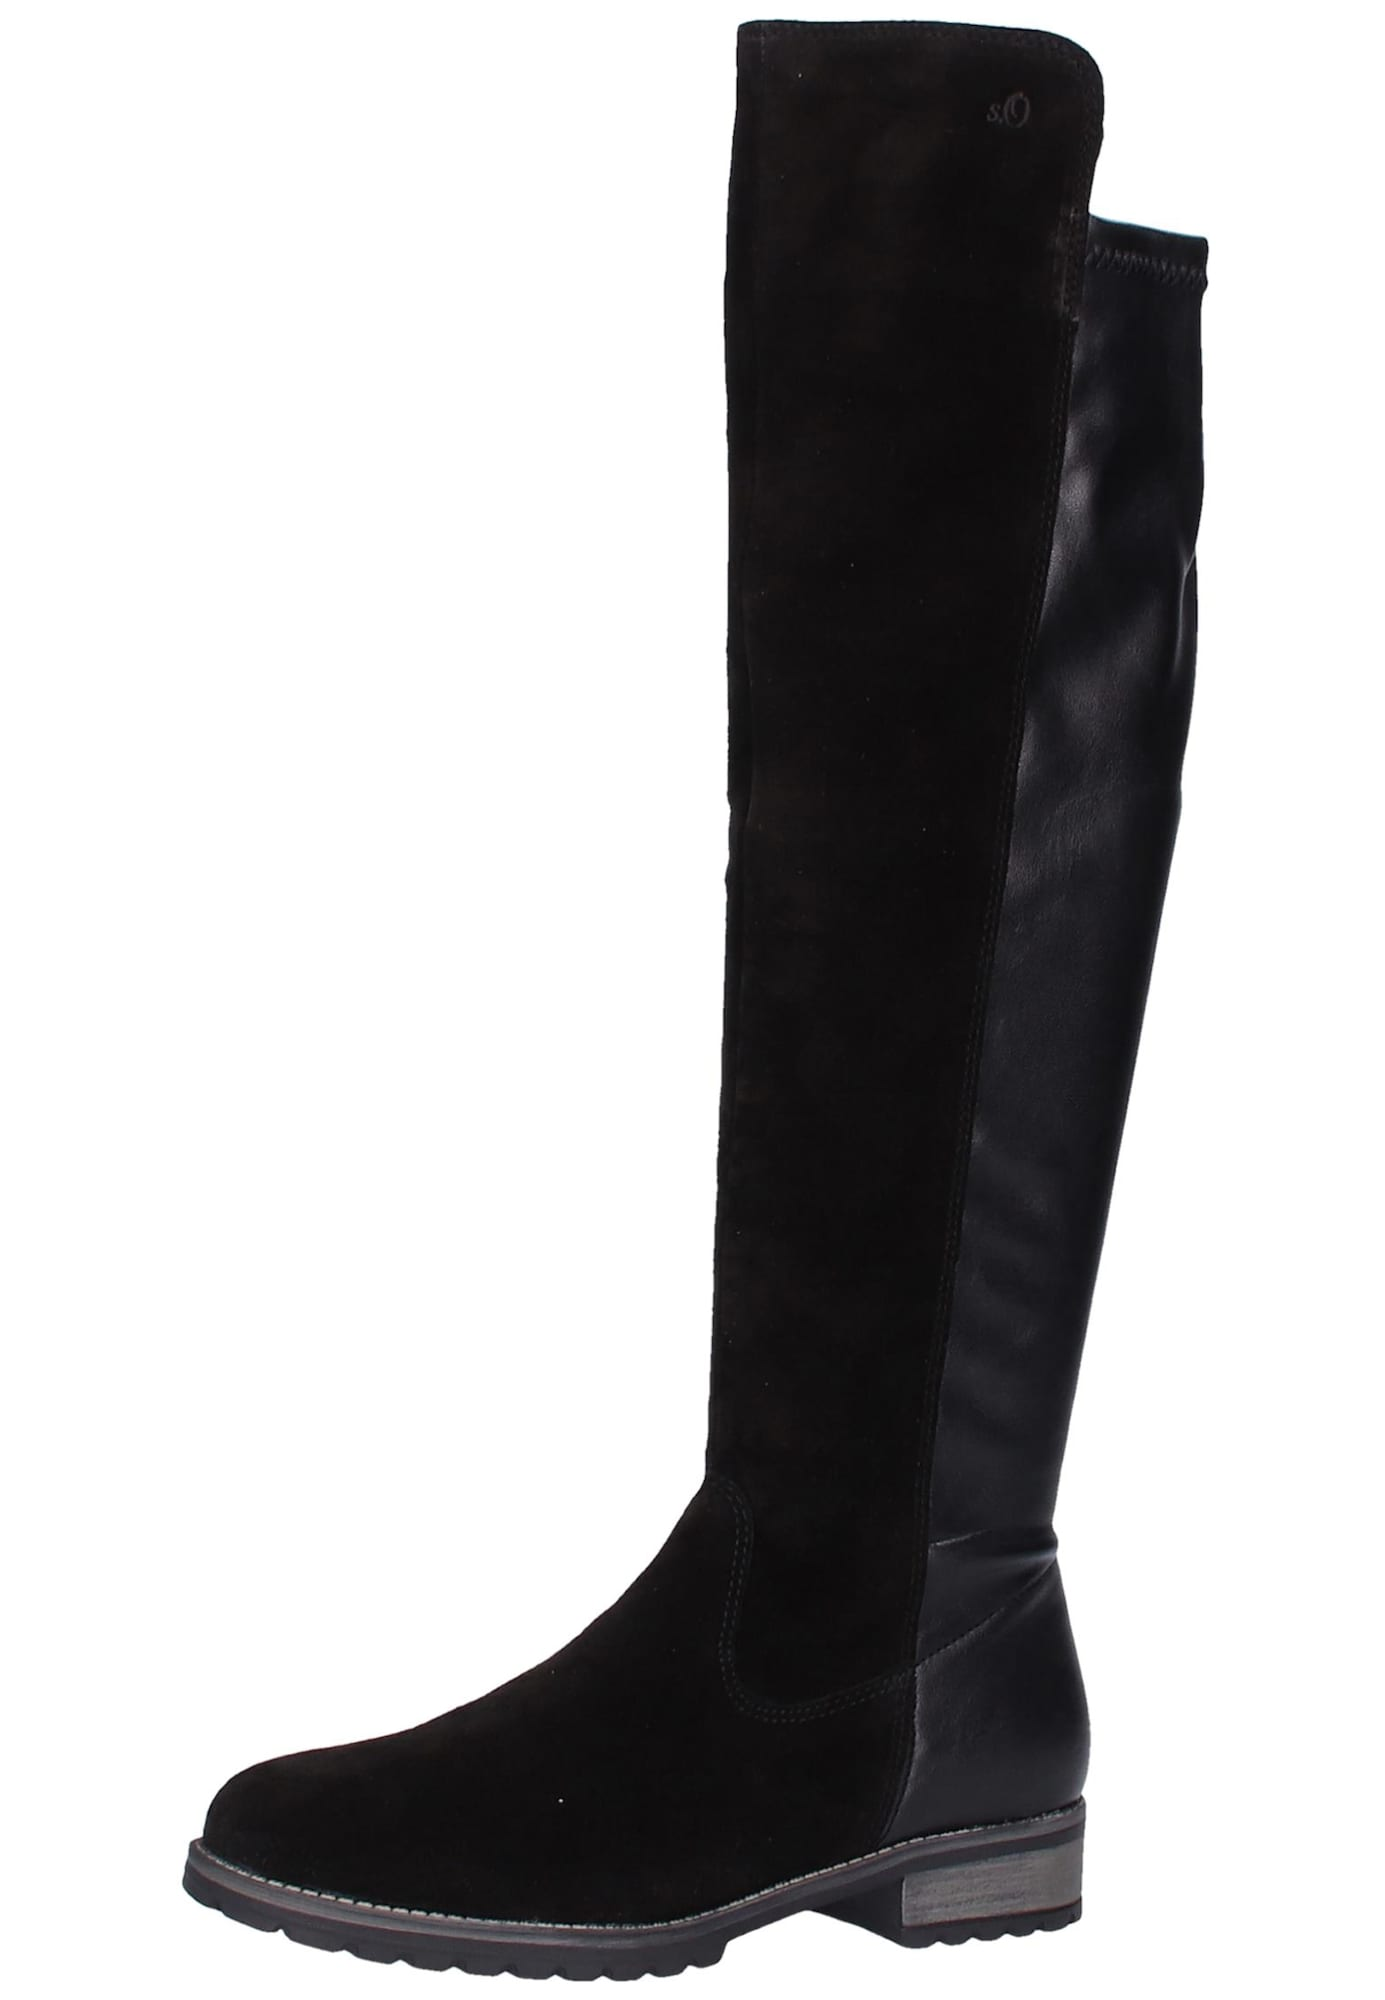 s.oliver red label - Stiefel